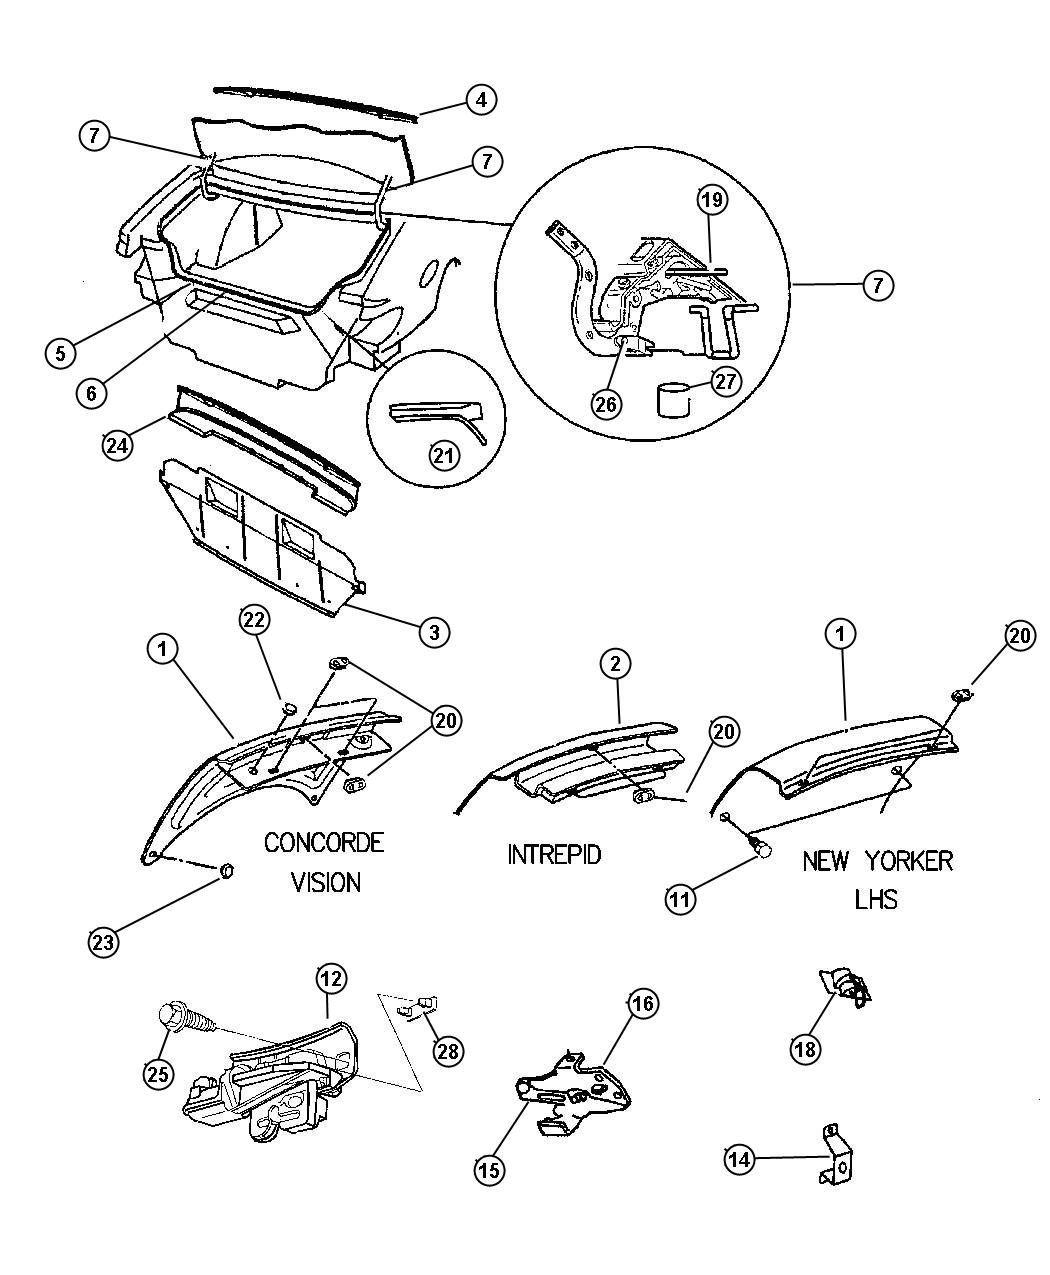 service manual  1994 eagle vision manual wiring sch